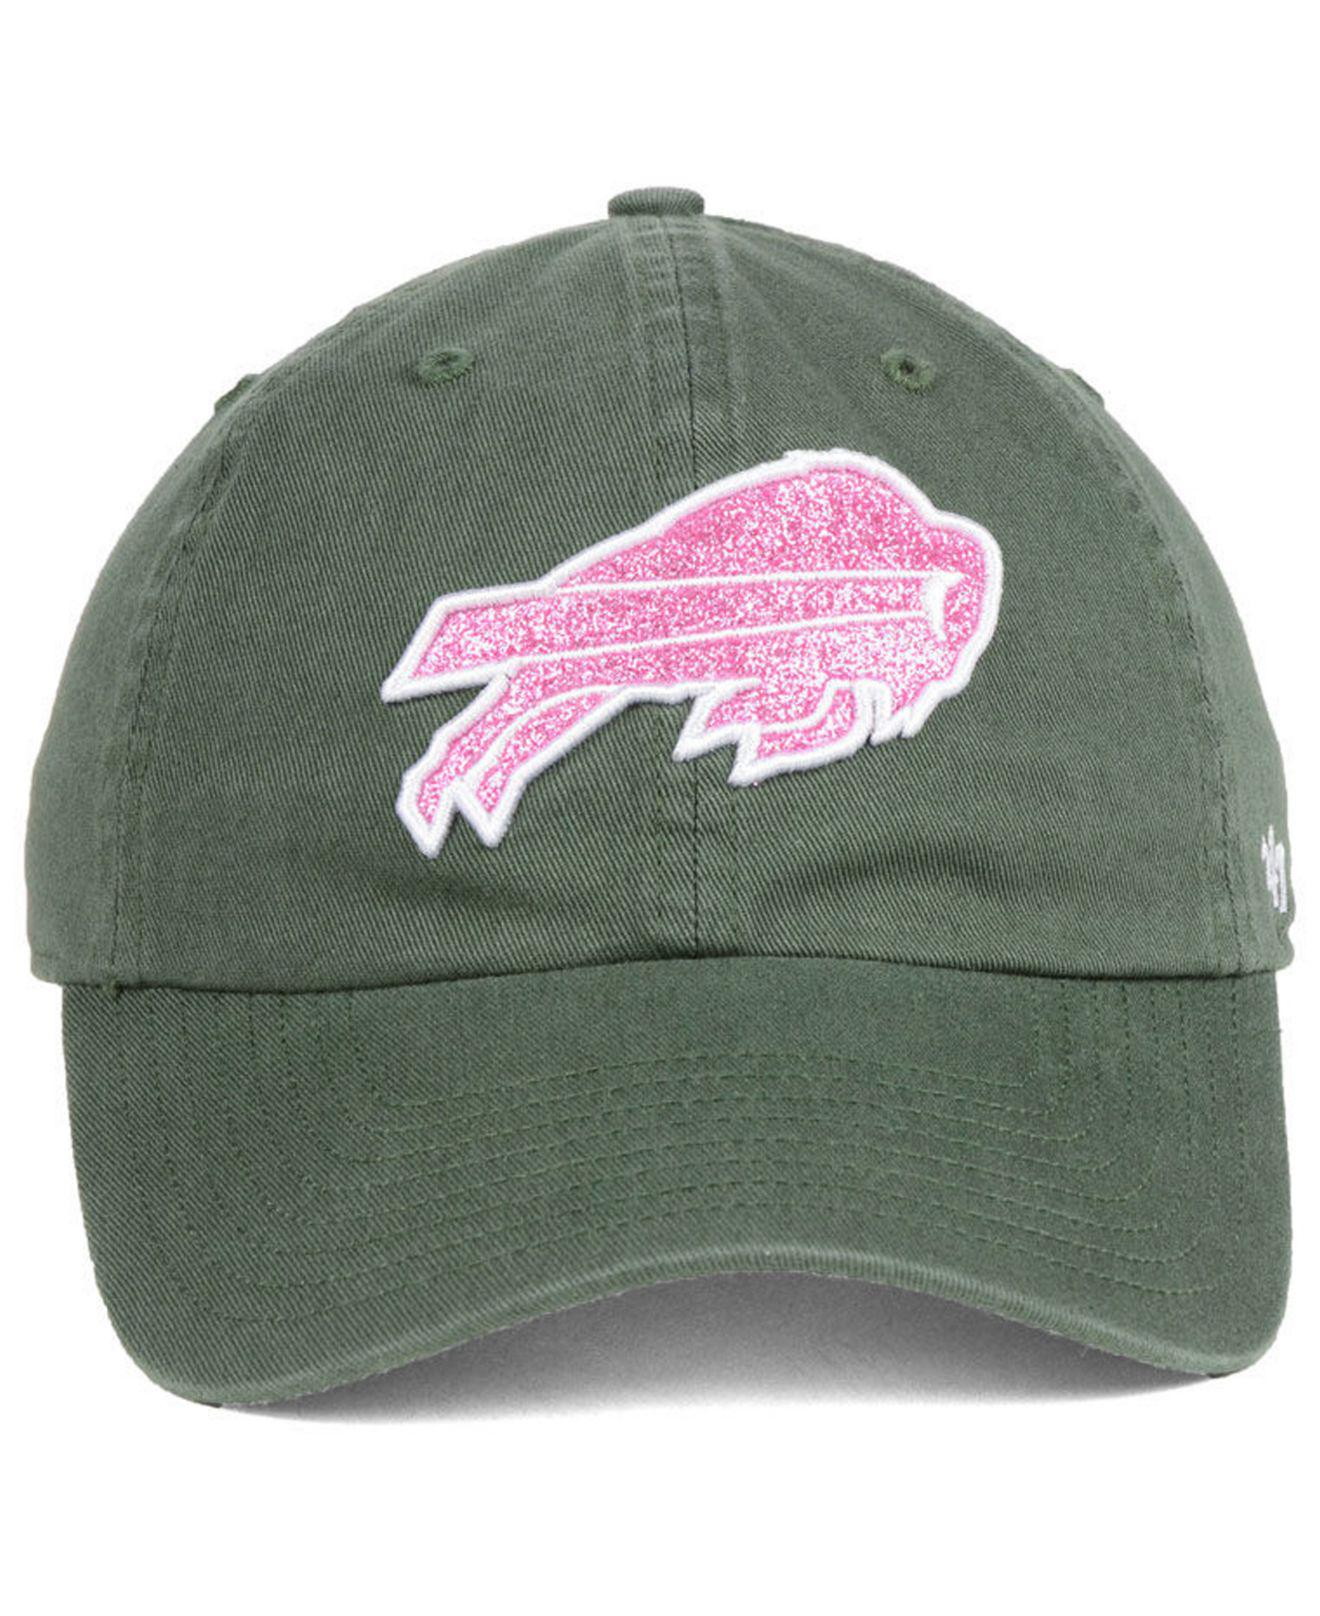 new arrival a843d 13a1b Lyst - 47 Brand Buffalo Bills Moss Glitta Clean Up Cap in Green